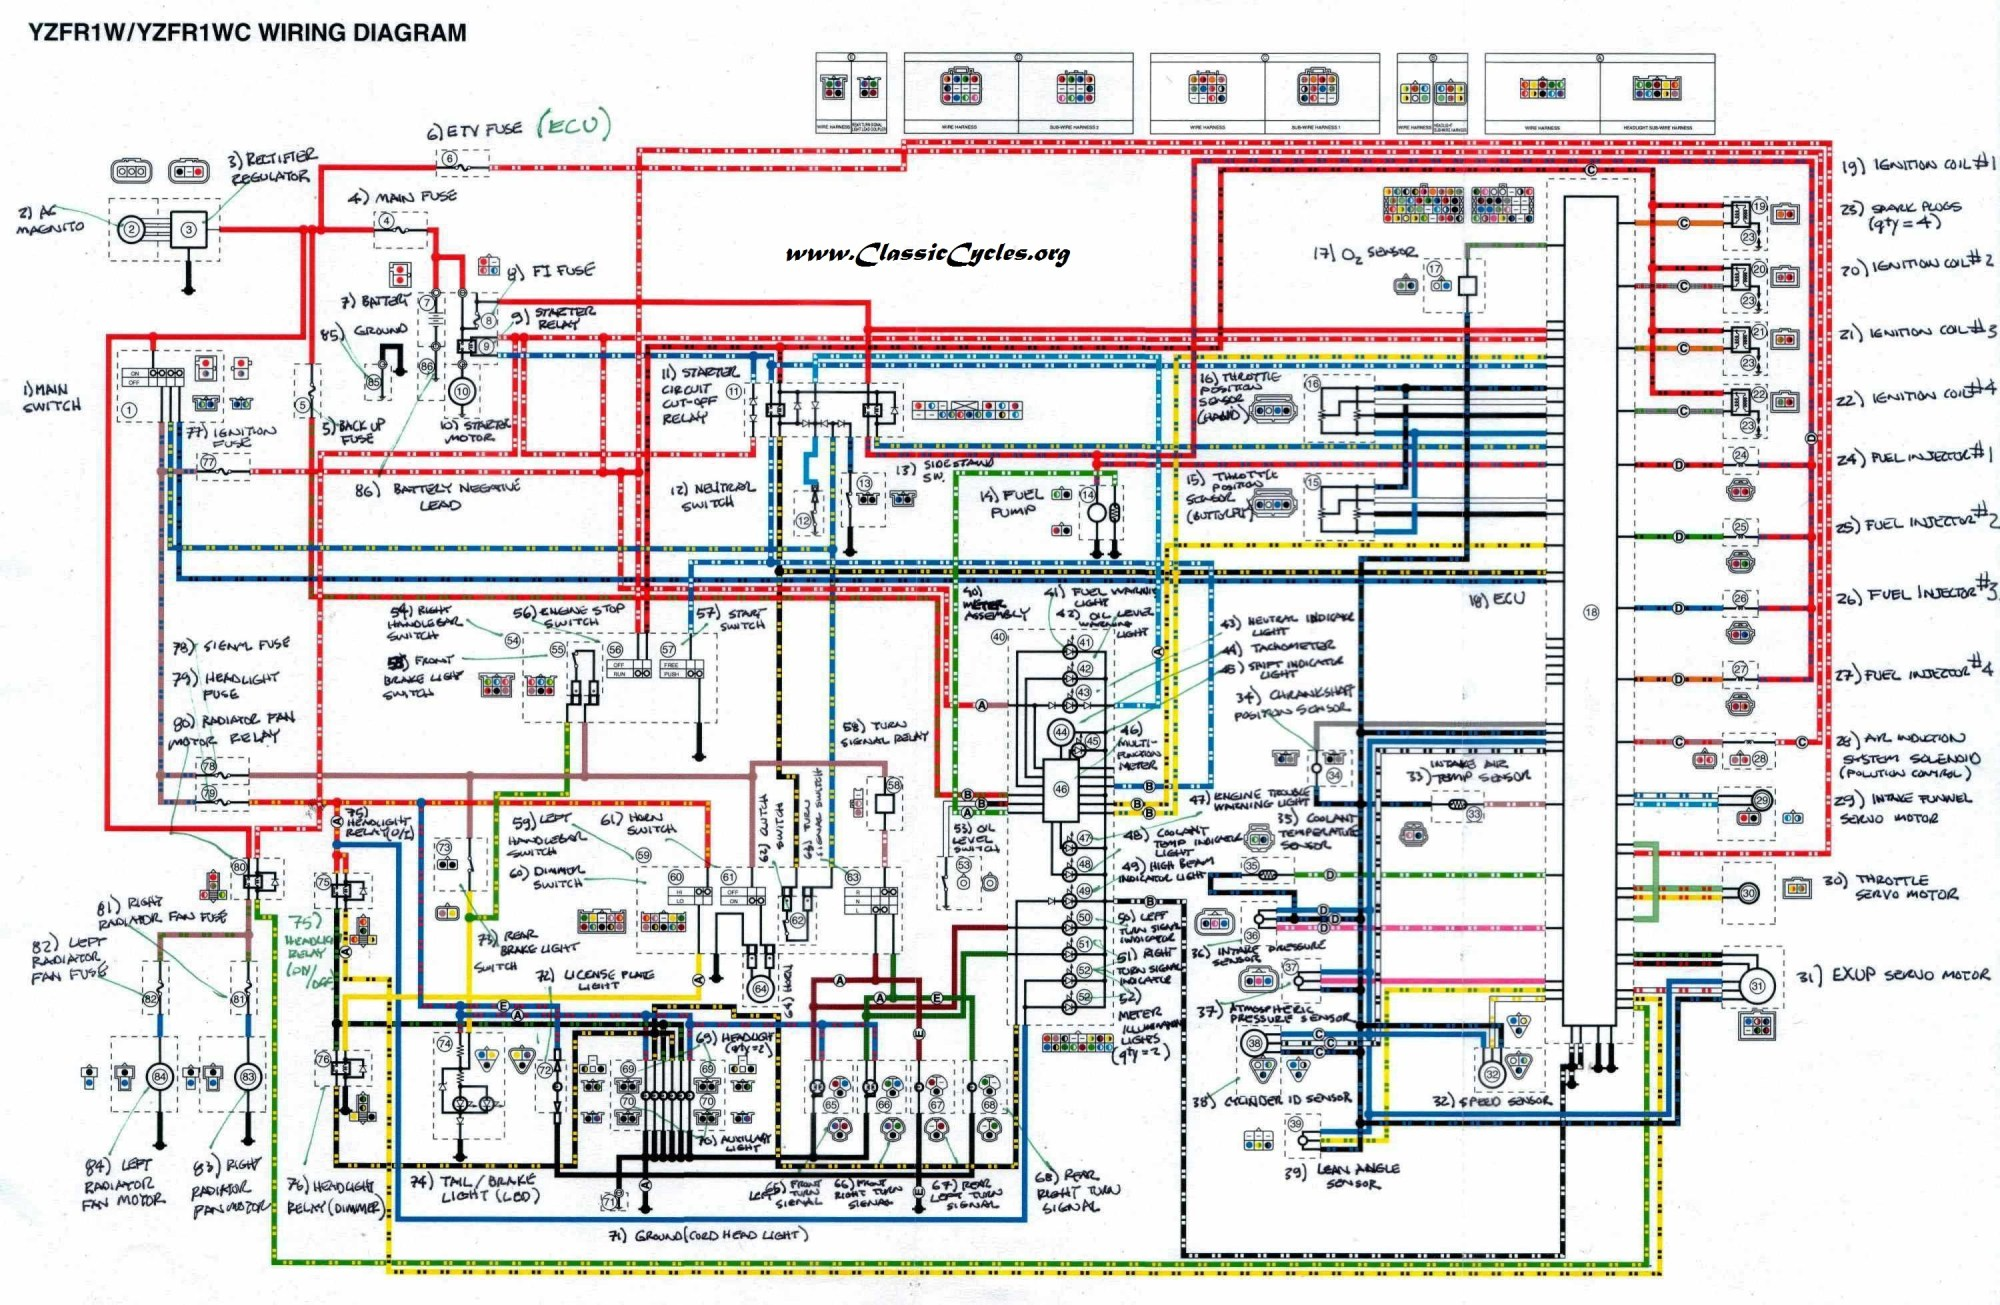 2001 Yamaha Yzf R1 Wiring Diagram  1950 willys wagon wiring diagram schematic wiring diagram